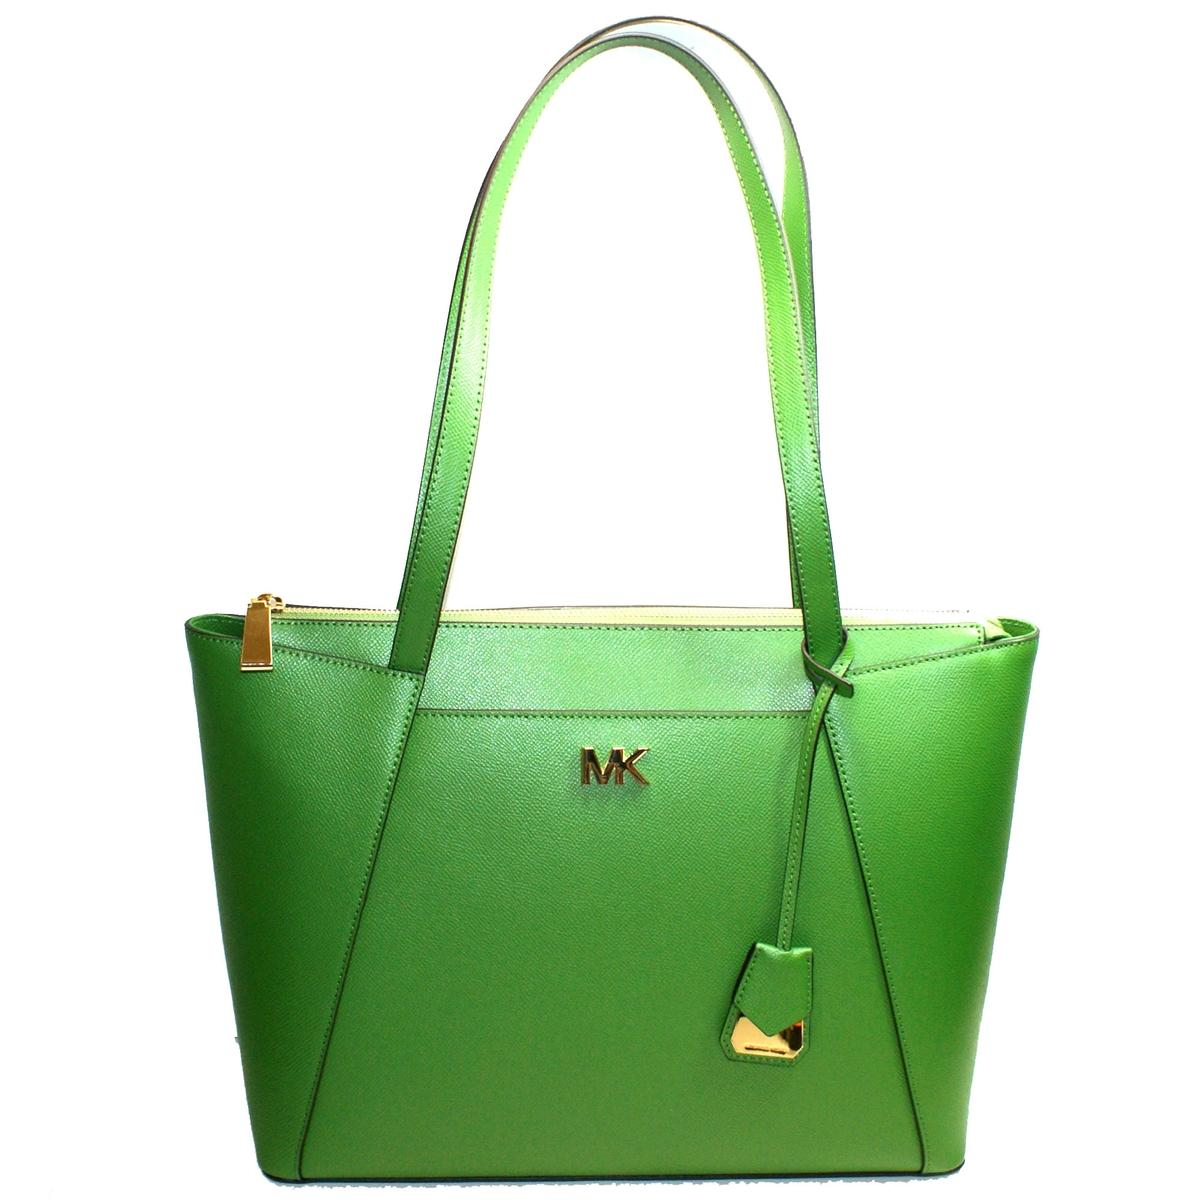 b893a333f Home · Michael Kors · Maddie East West Leather Medium Tote Bag True Green.  CLICK THUMBNAIL TO ZOOM. Found ...